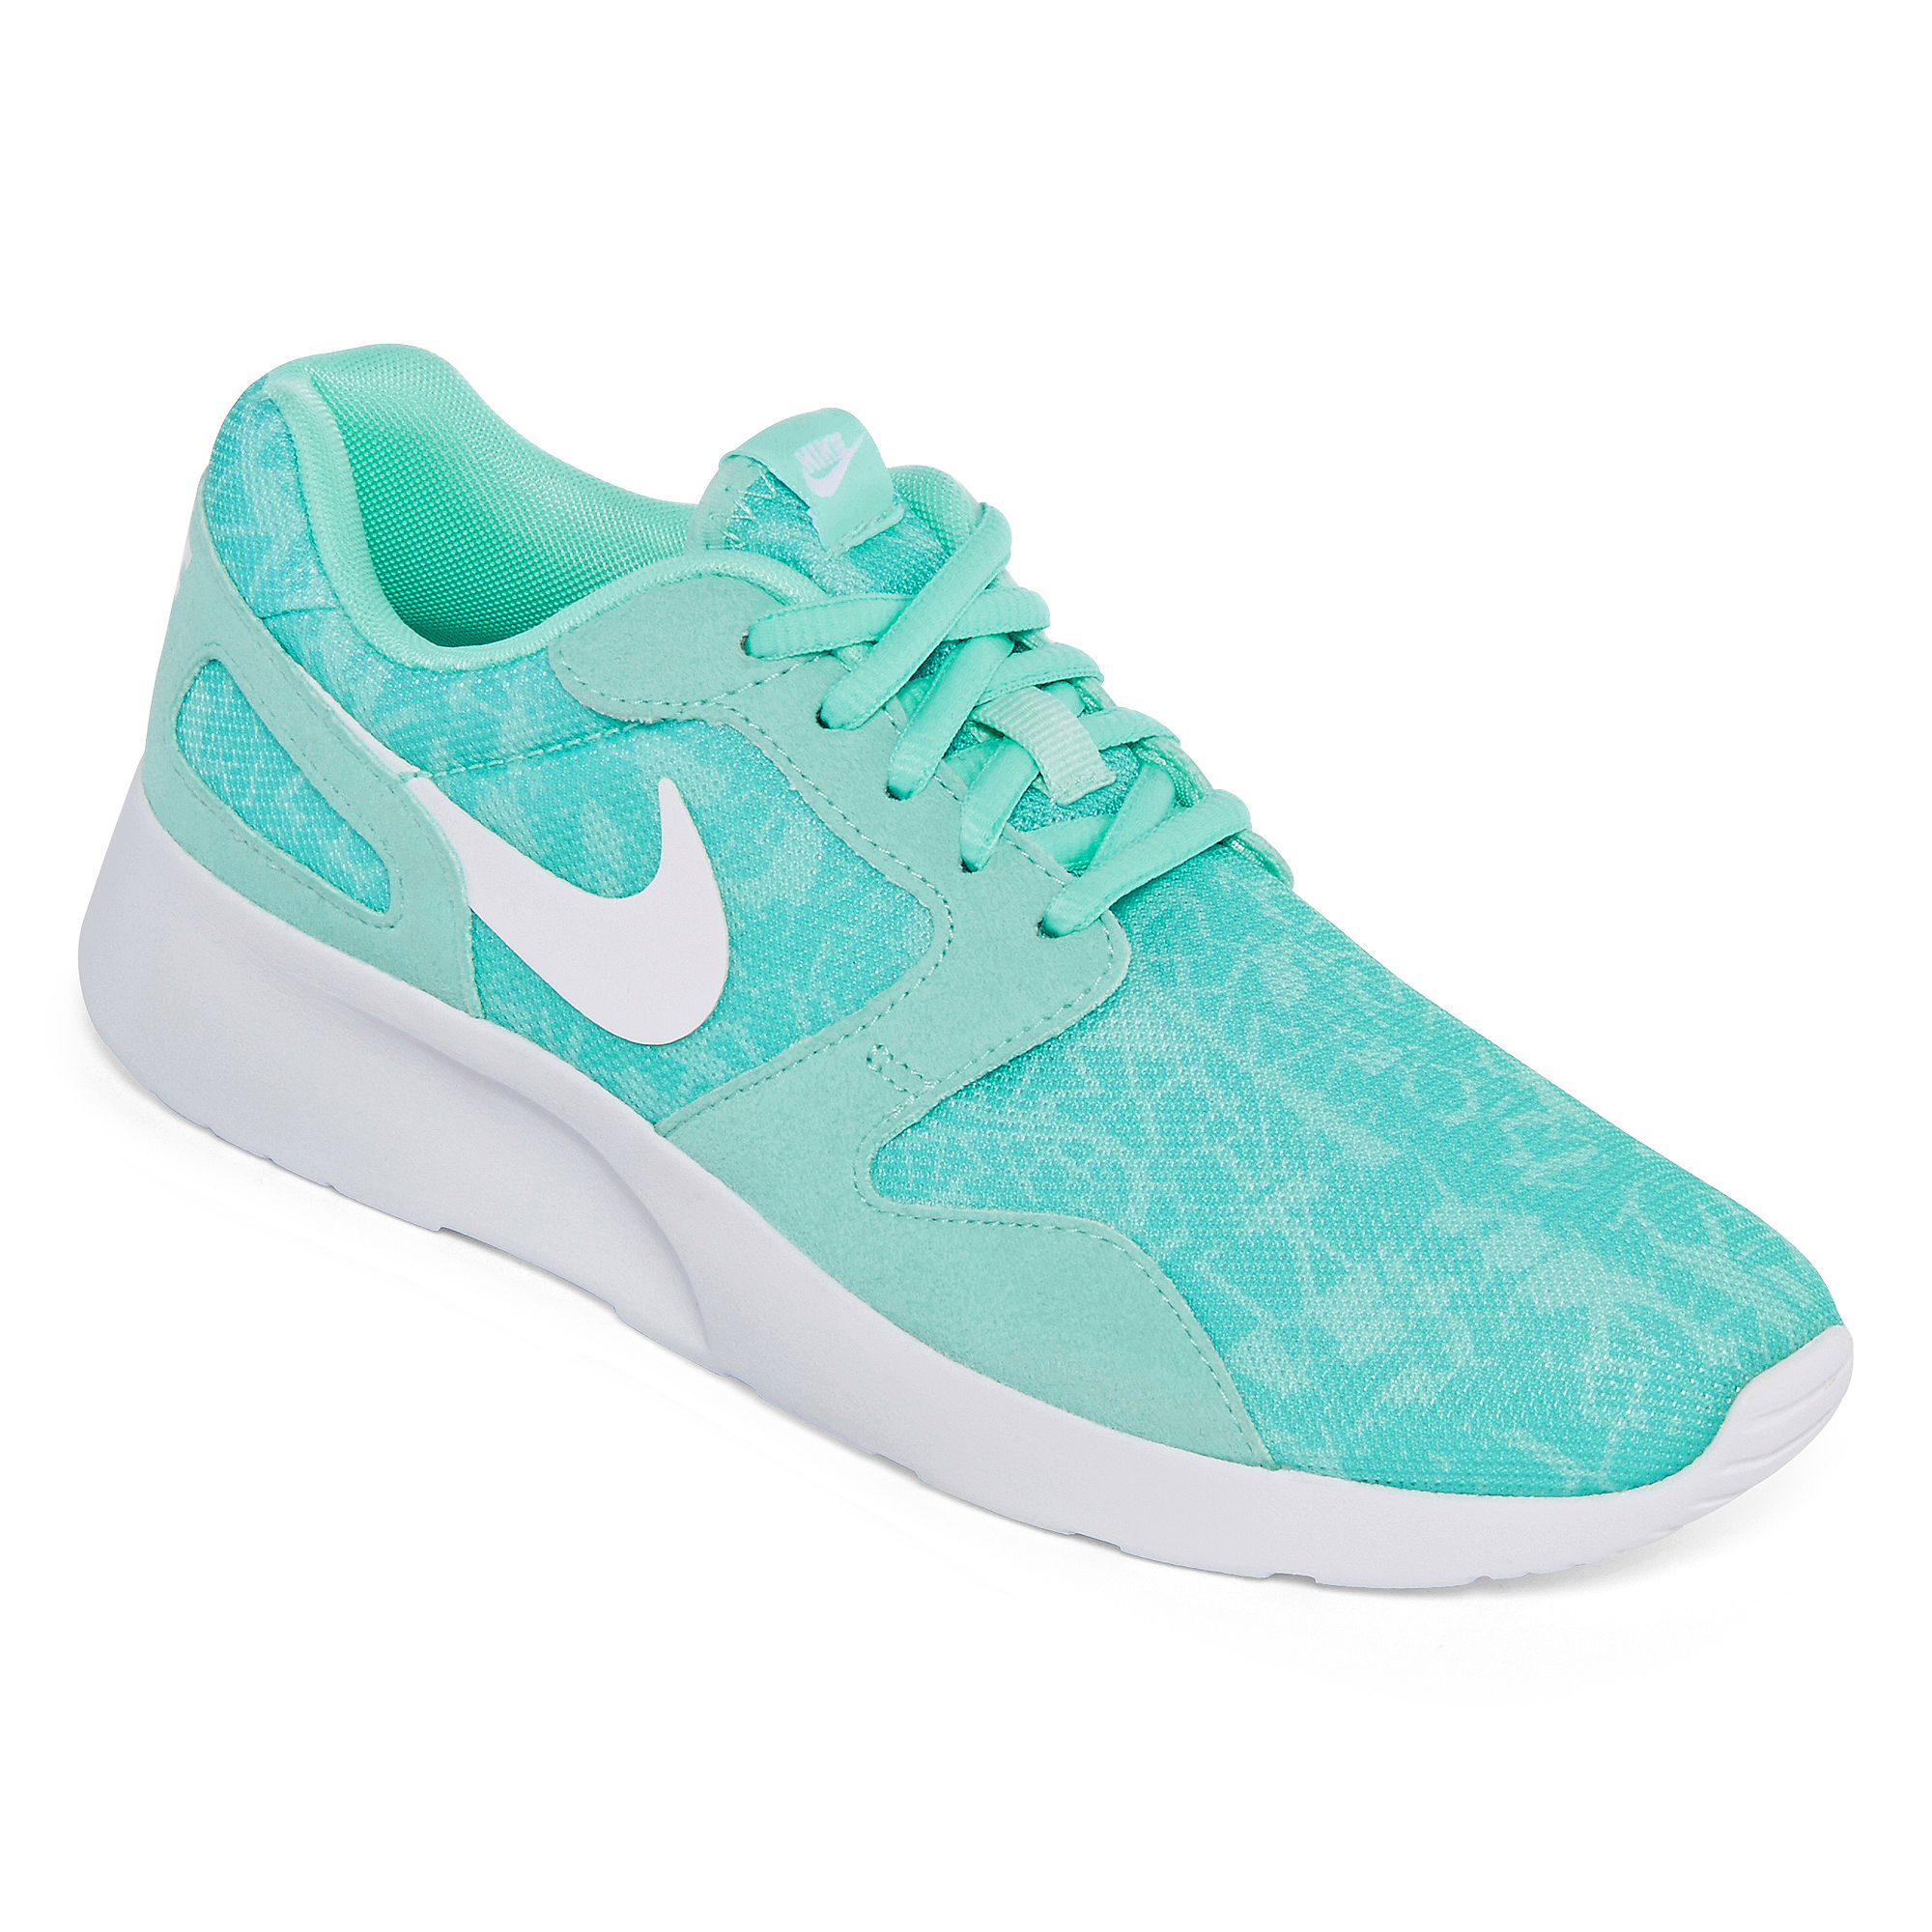 bec0addc1a ... promo code upc 888507749390 product image for nike kaishi print womens  running shoes upcitemdb . 2488a